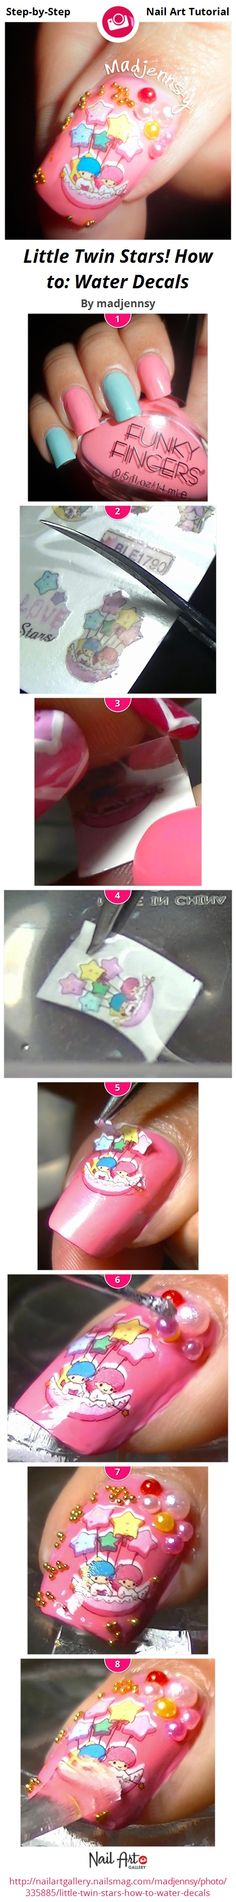 Little Twin Stars! How to: Water Decals